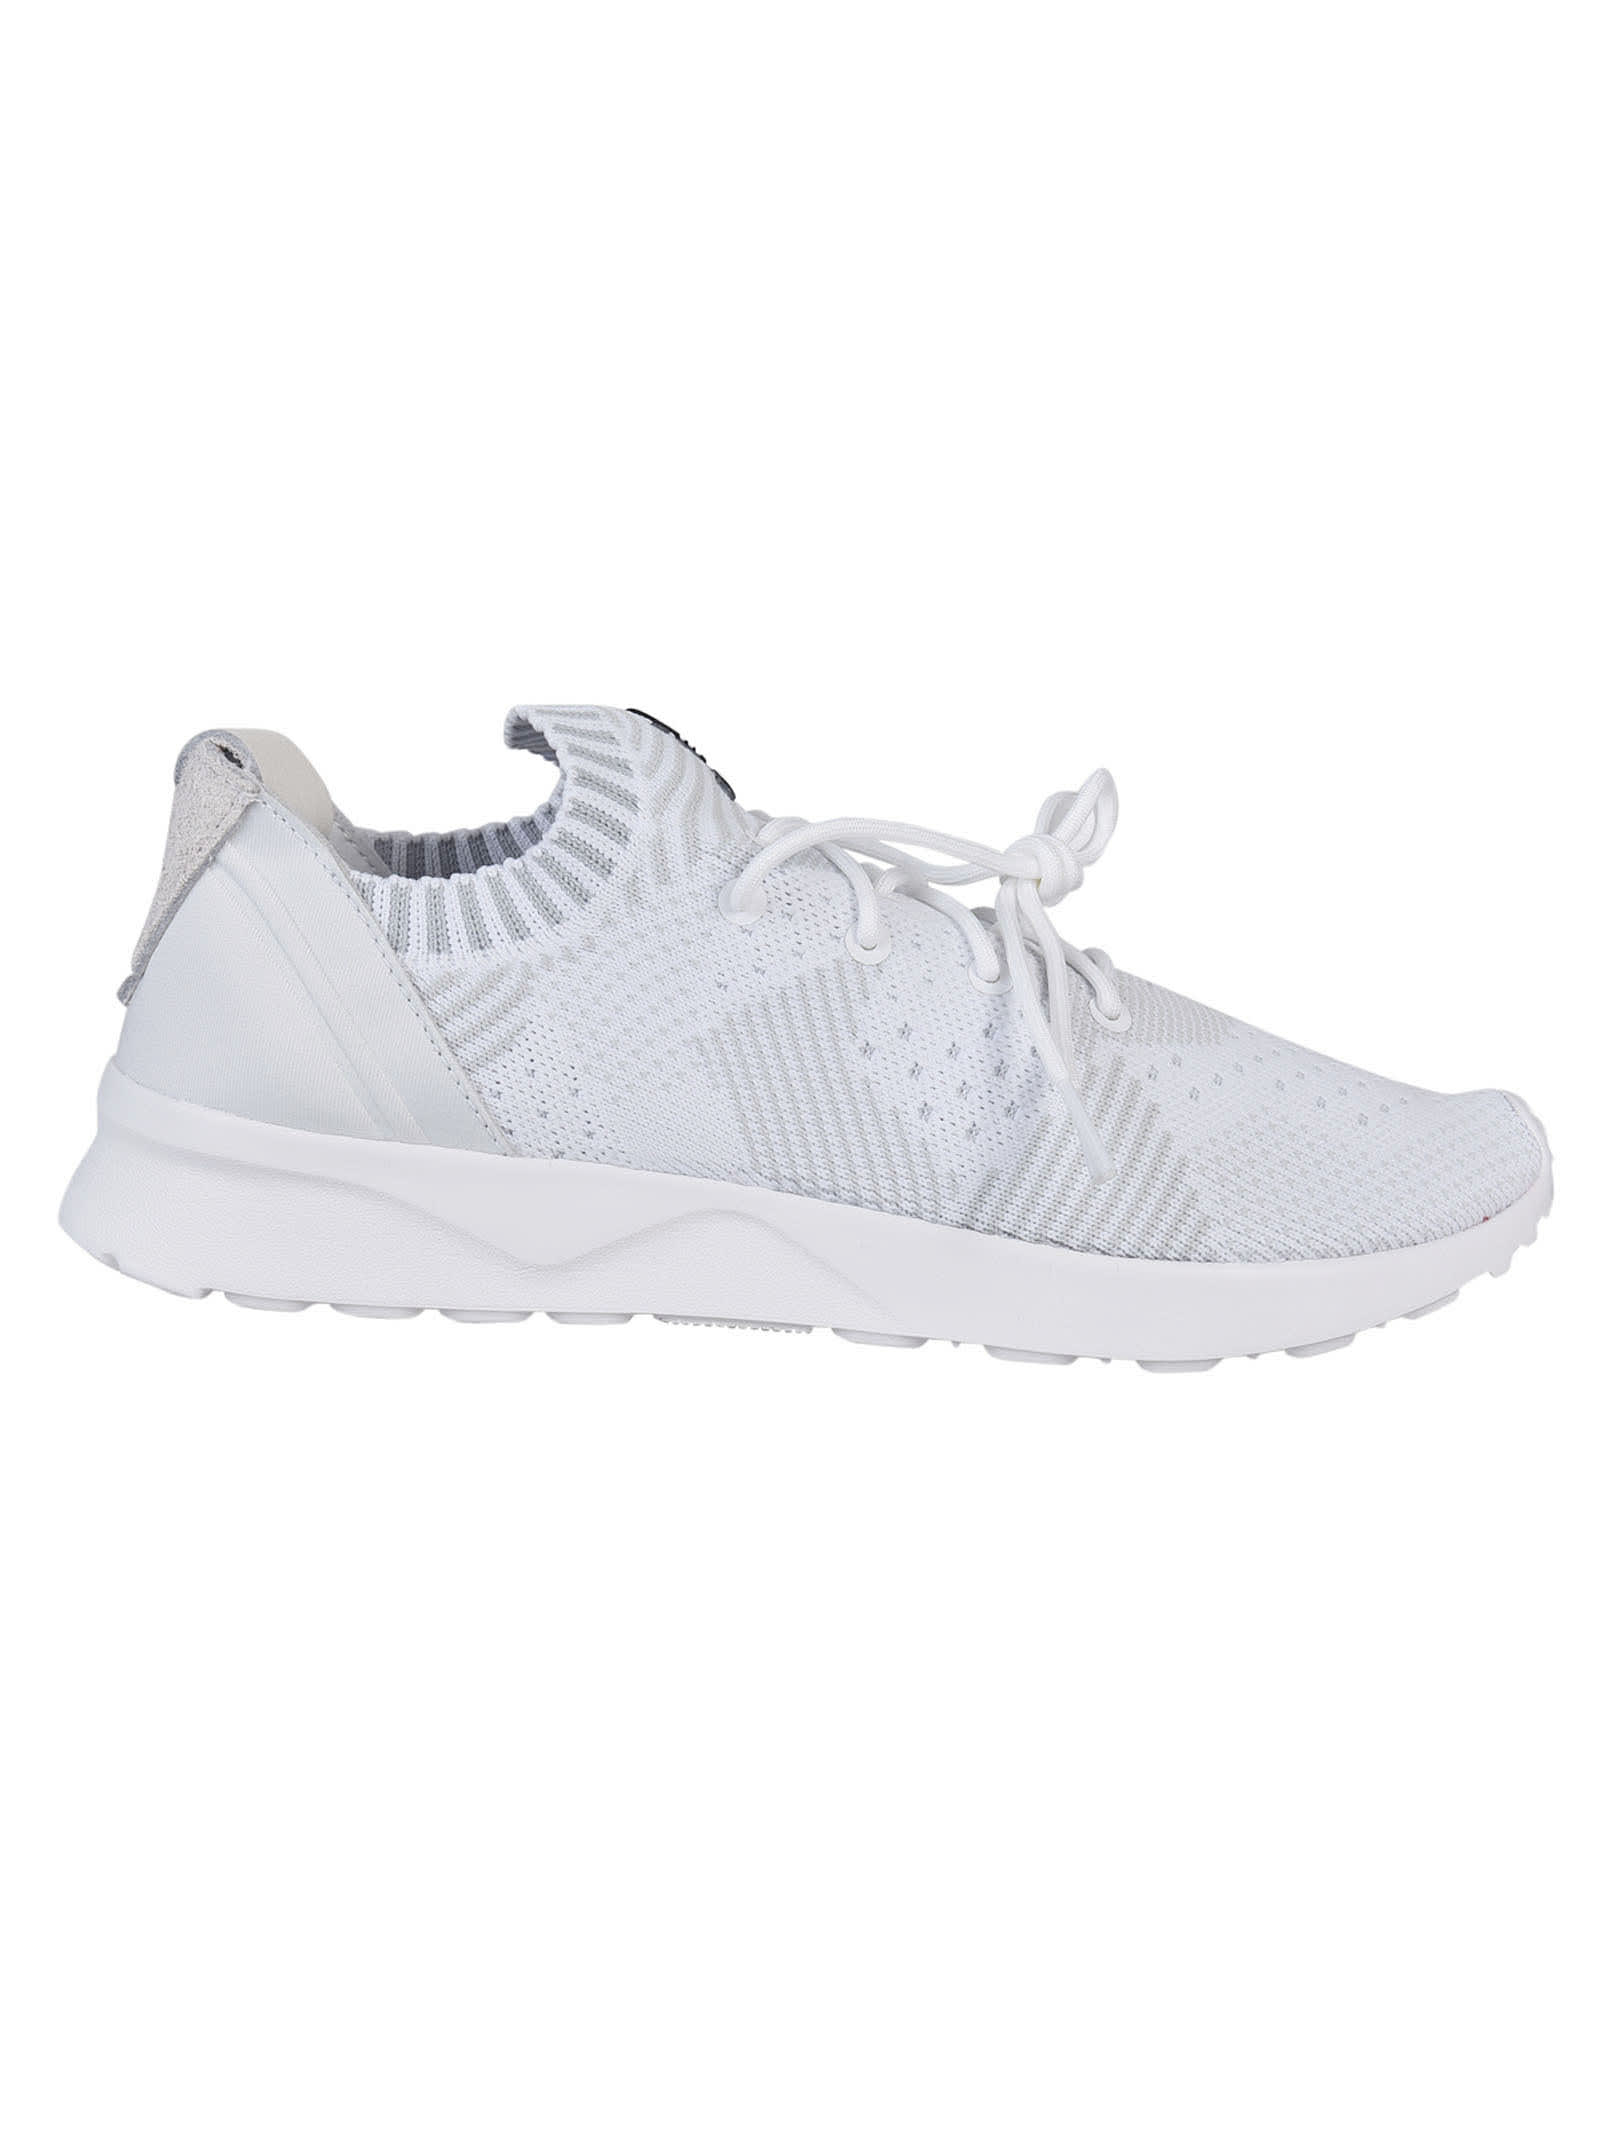 on sale 78772 a5521 Adidas ZX Flux Adv PK Sneakers